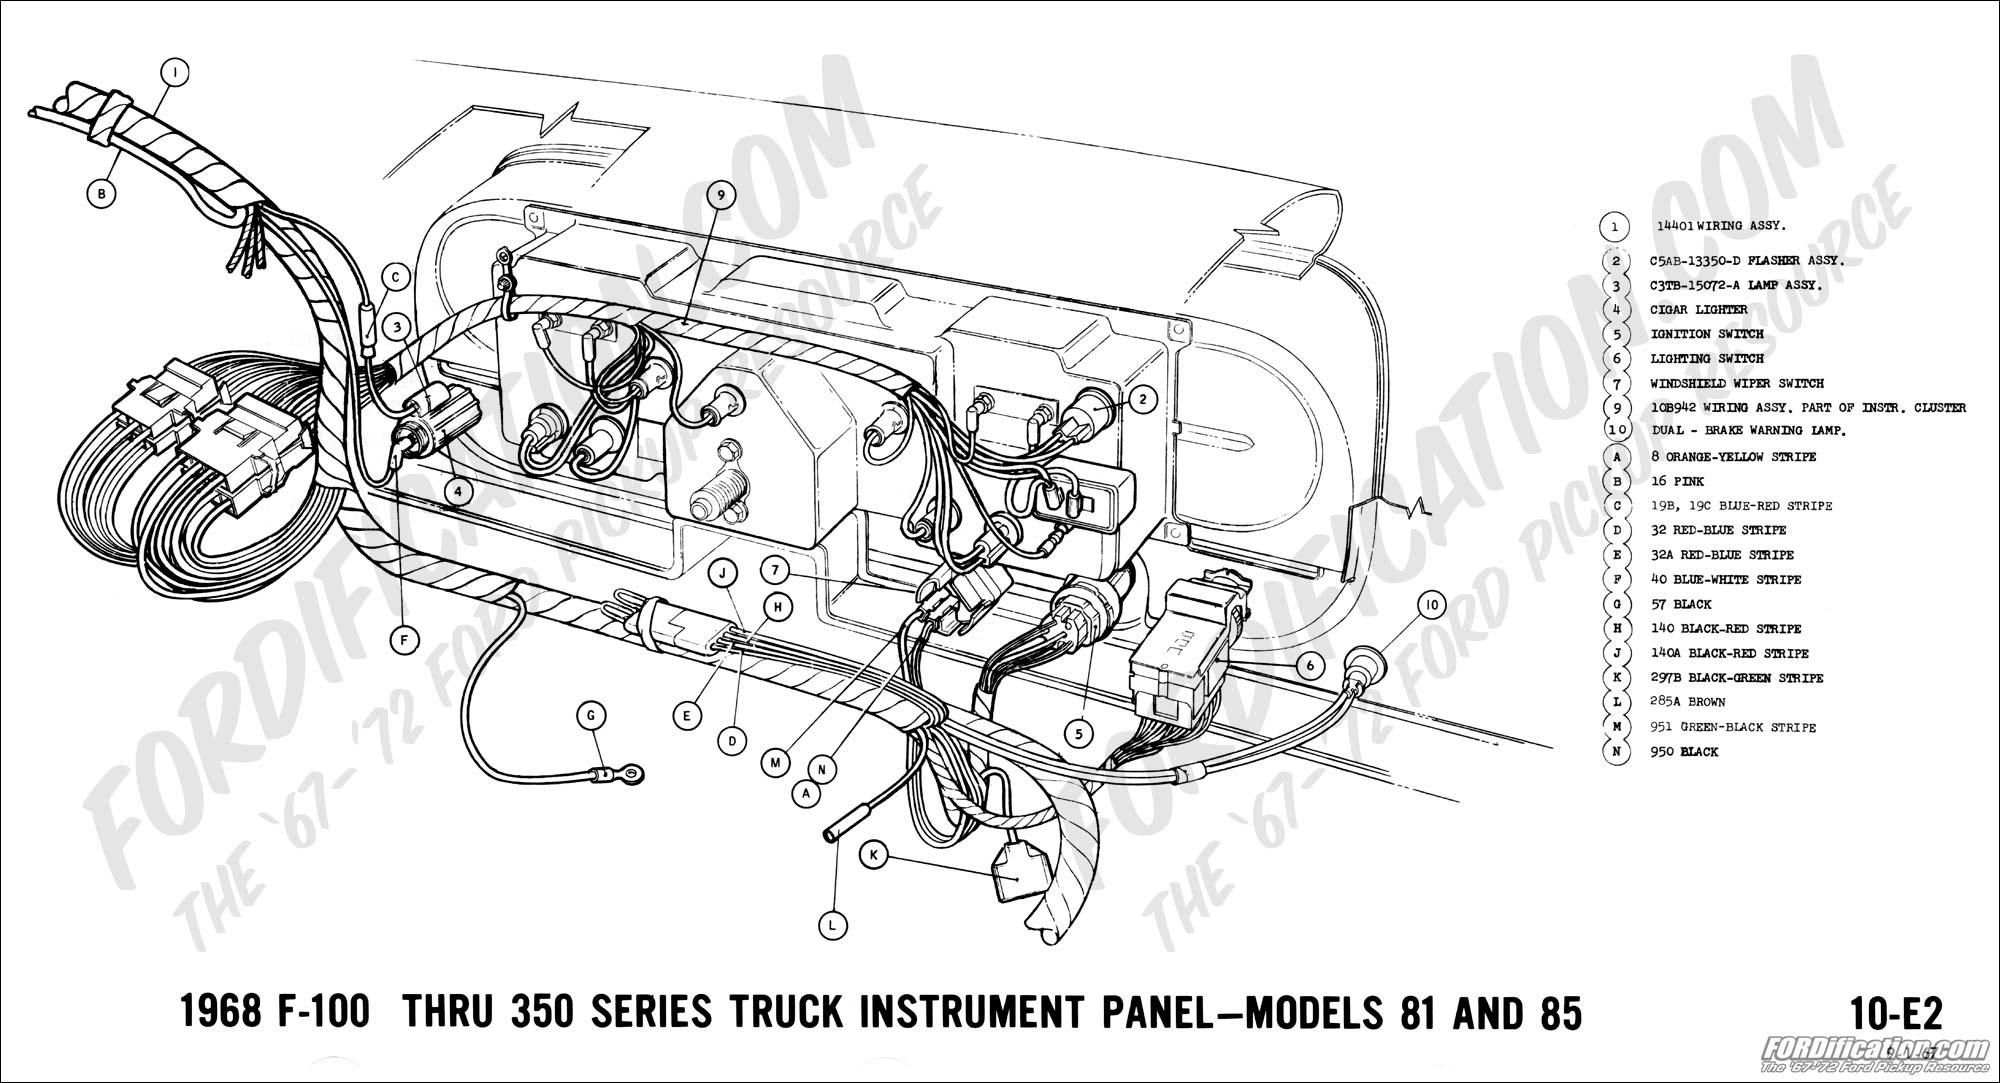 Ford Truck Technical Drawings And Schematics Section H Wiring 2007 Mustang Backup Lights 1968 F 100 Thru 350 Instrument Panel